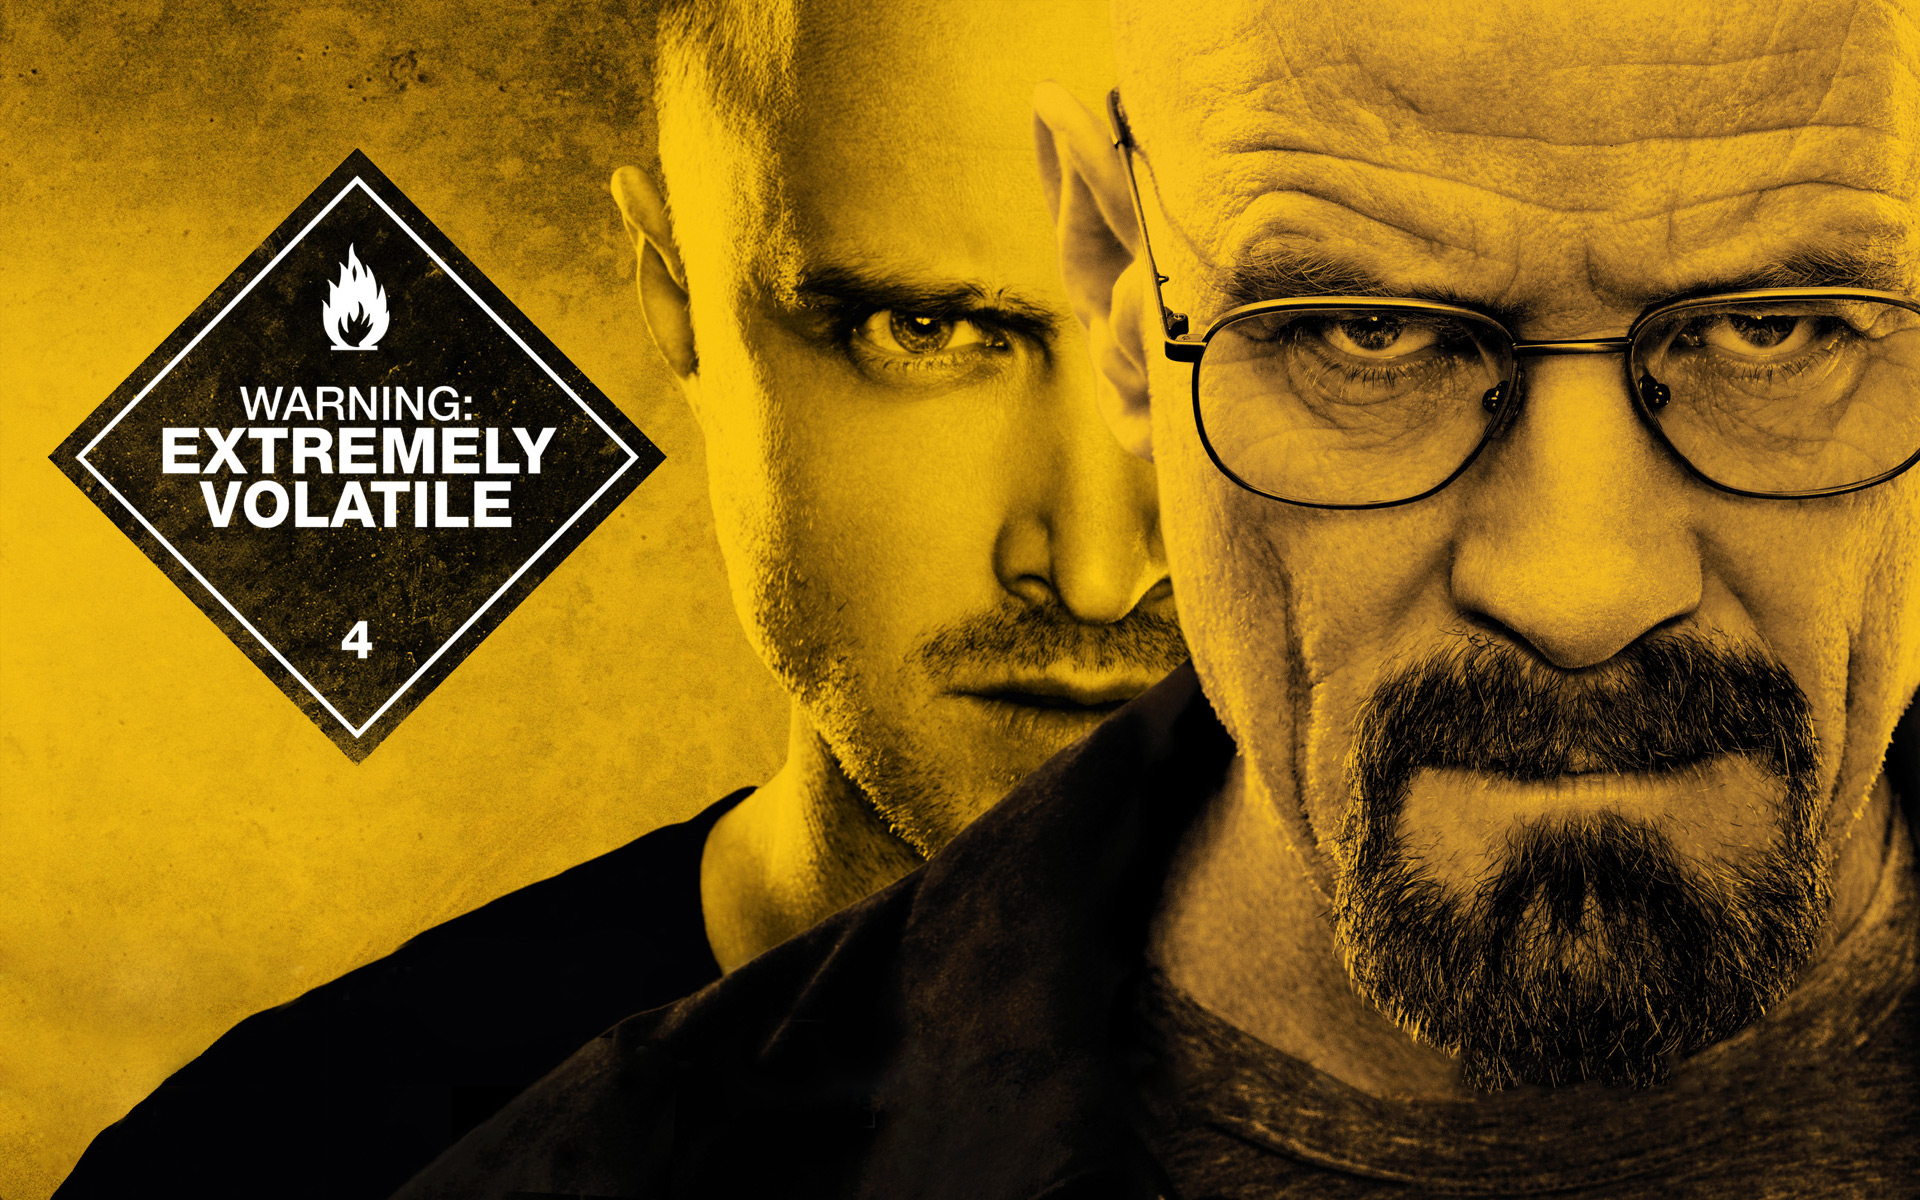 wallpapers hd breaking bad